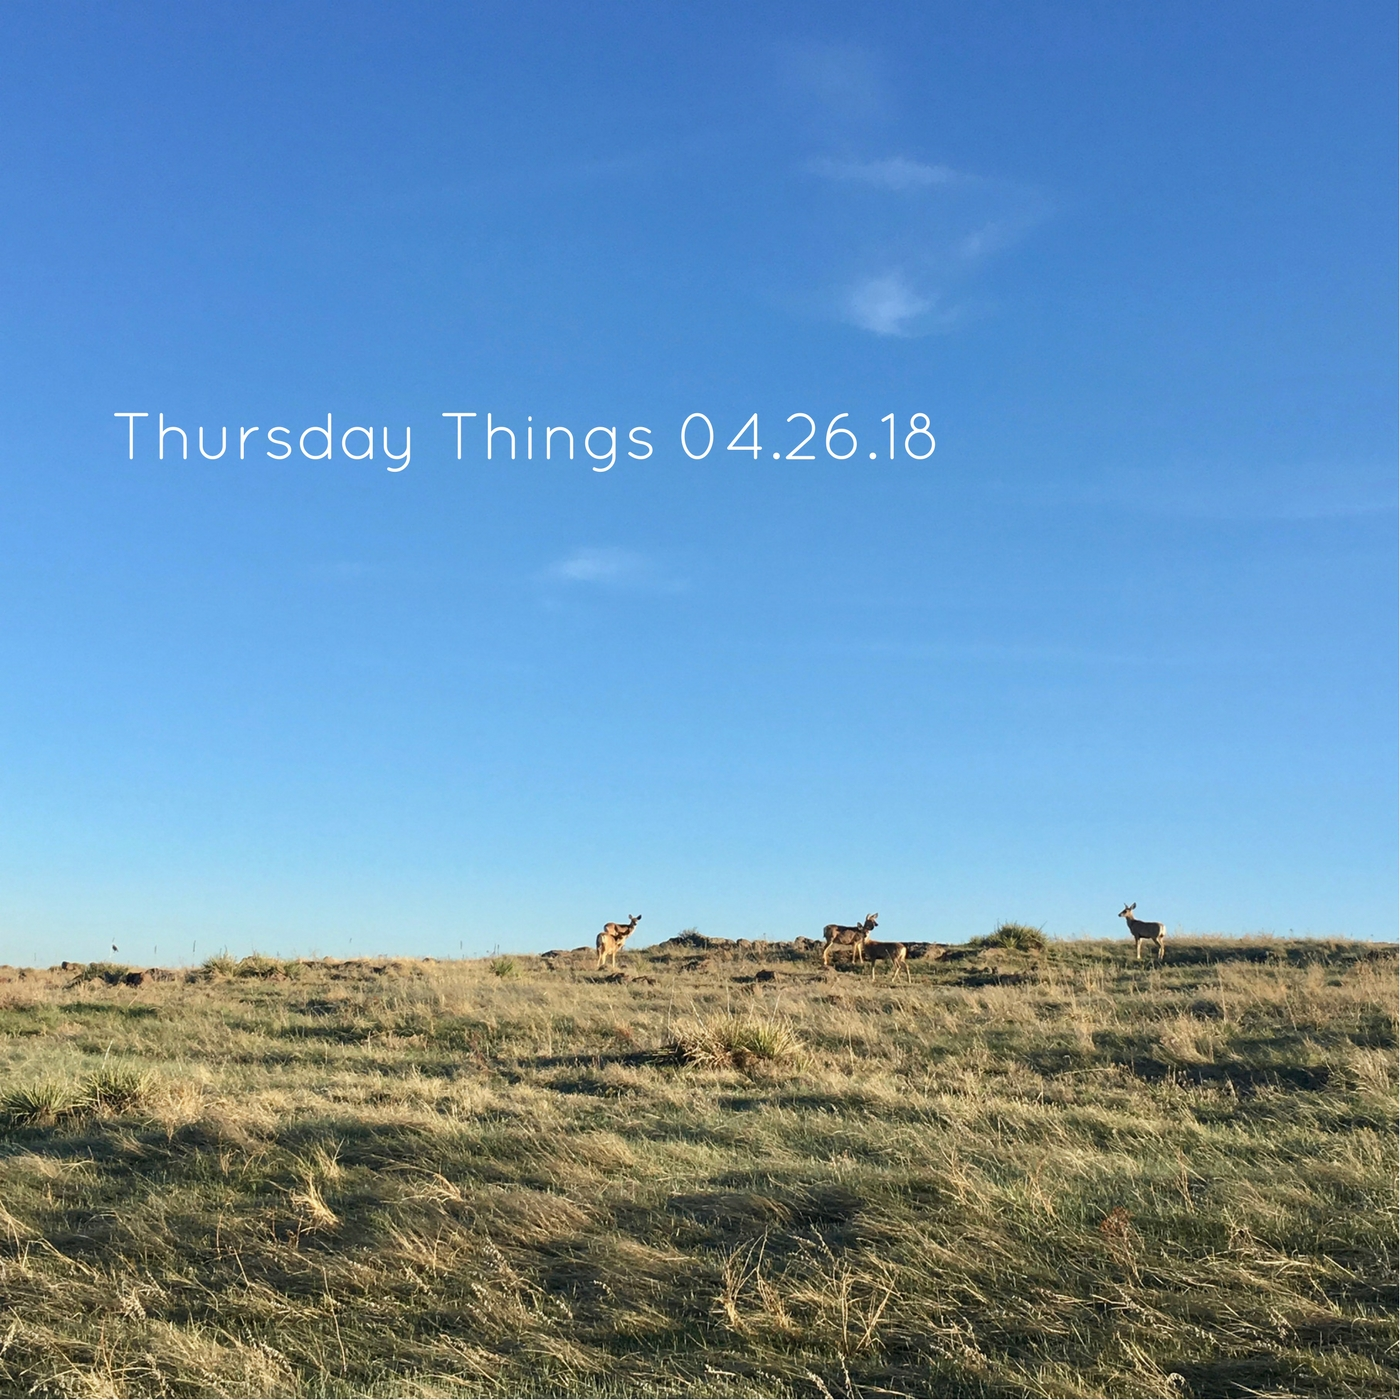 Thursday Things 04.26.18